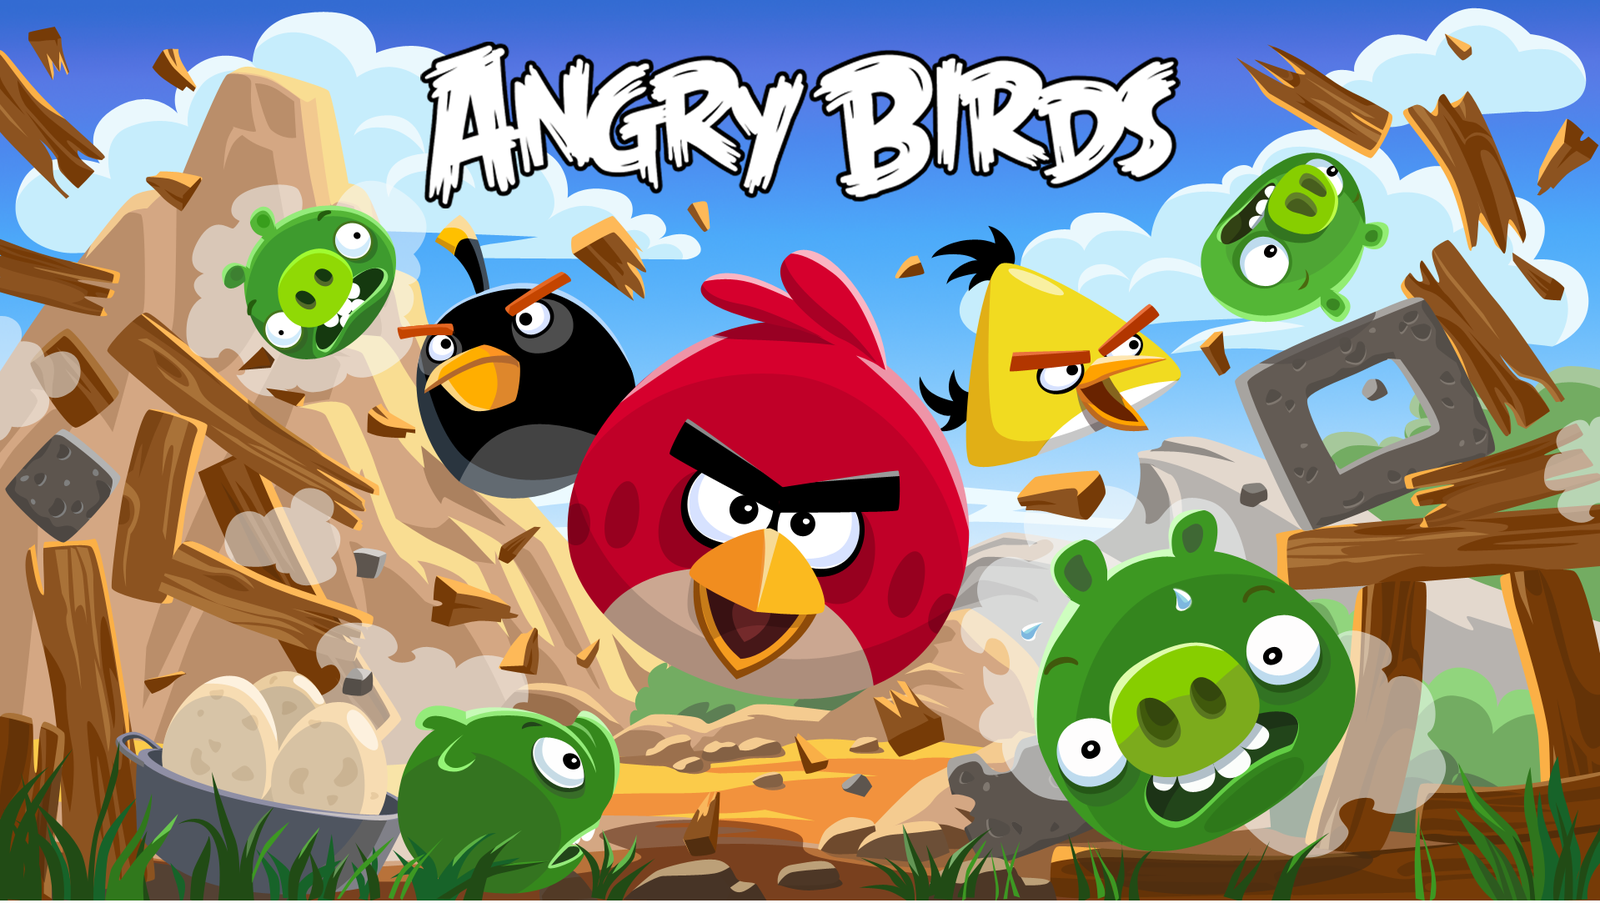 Les Angry Birds passent à l'attaque